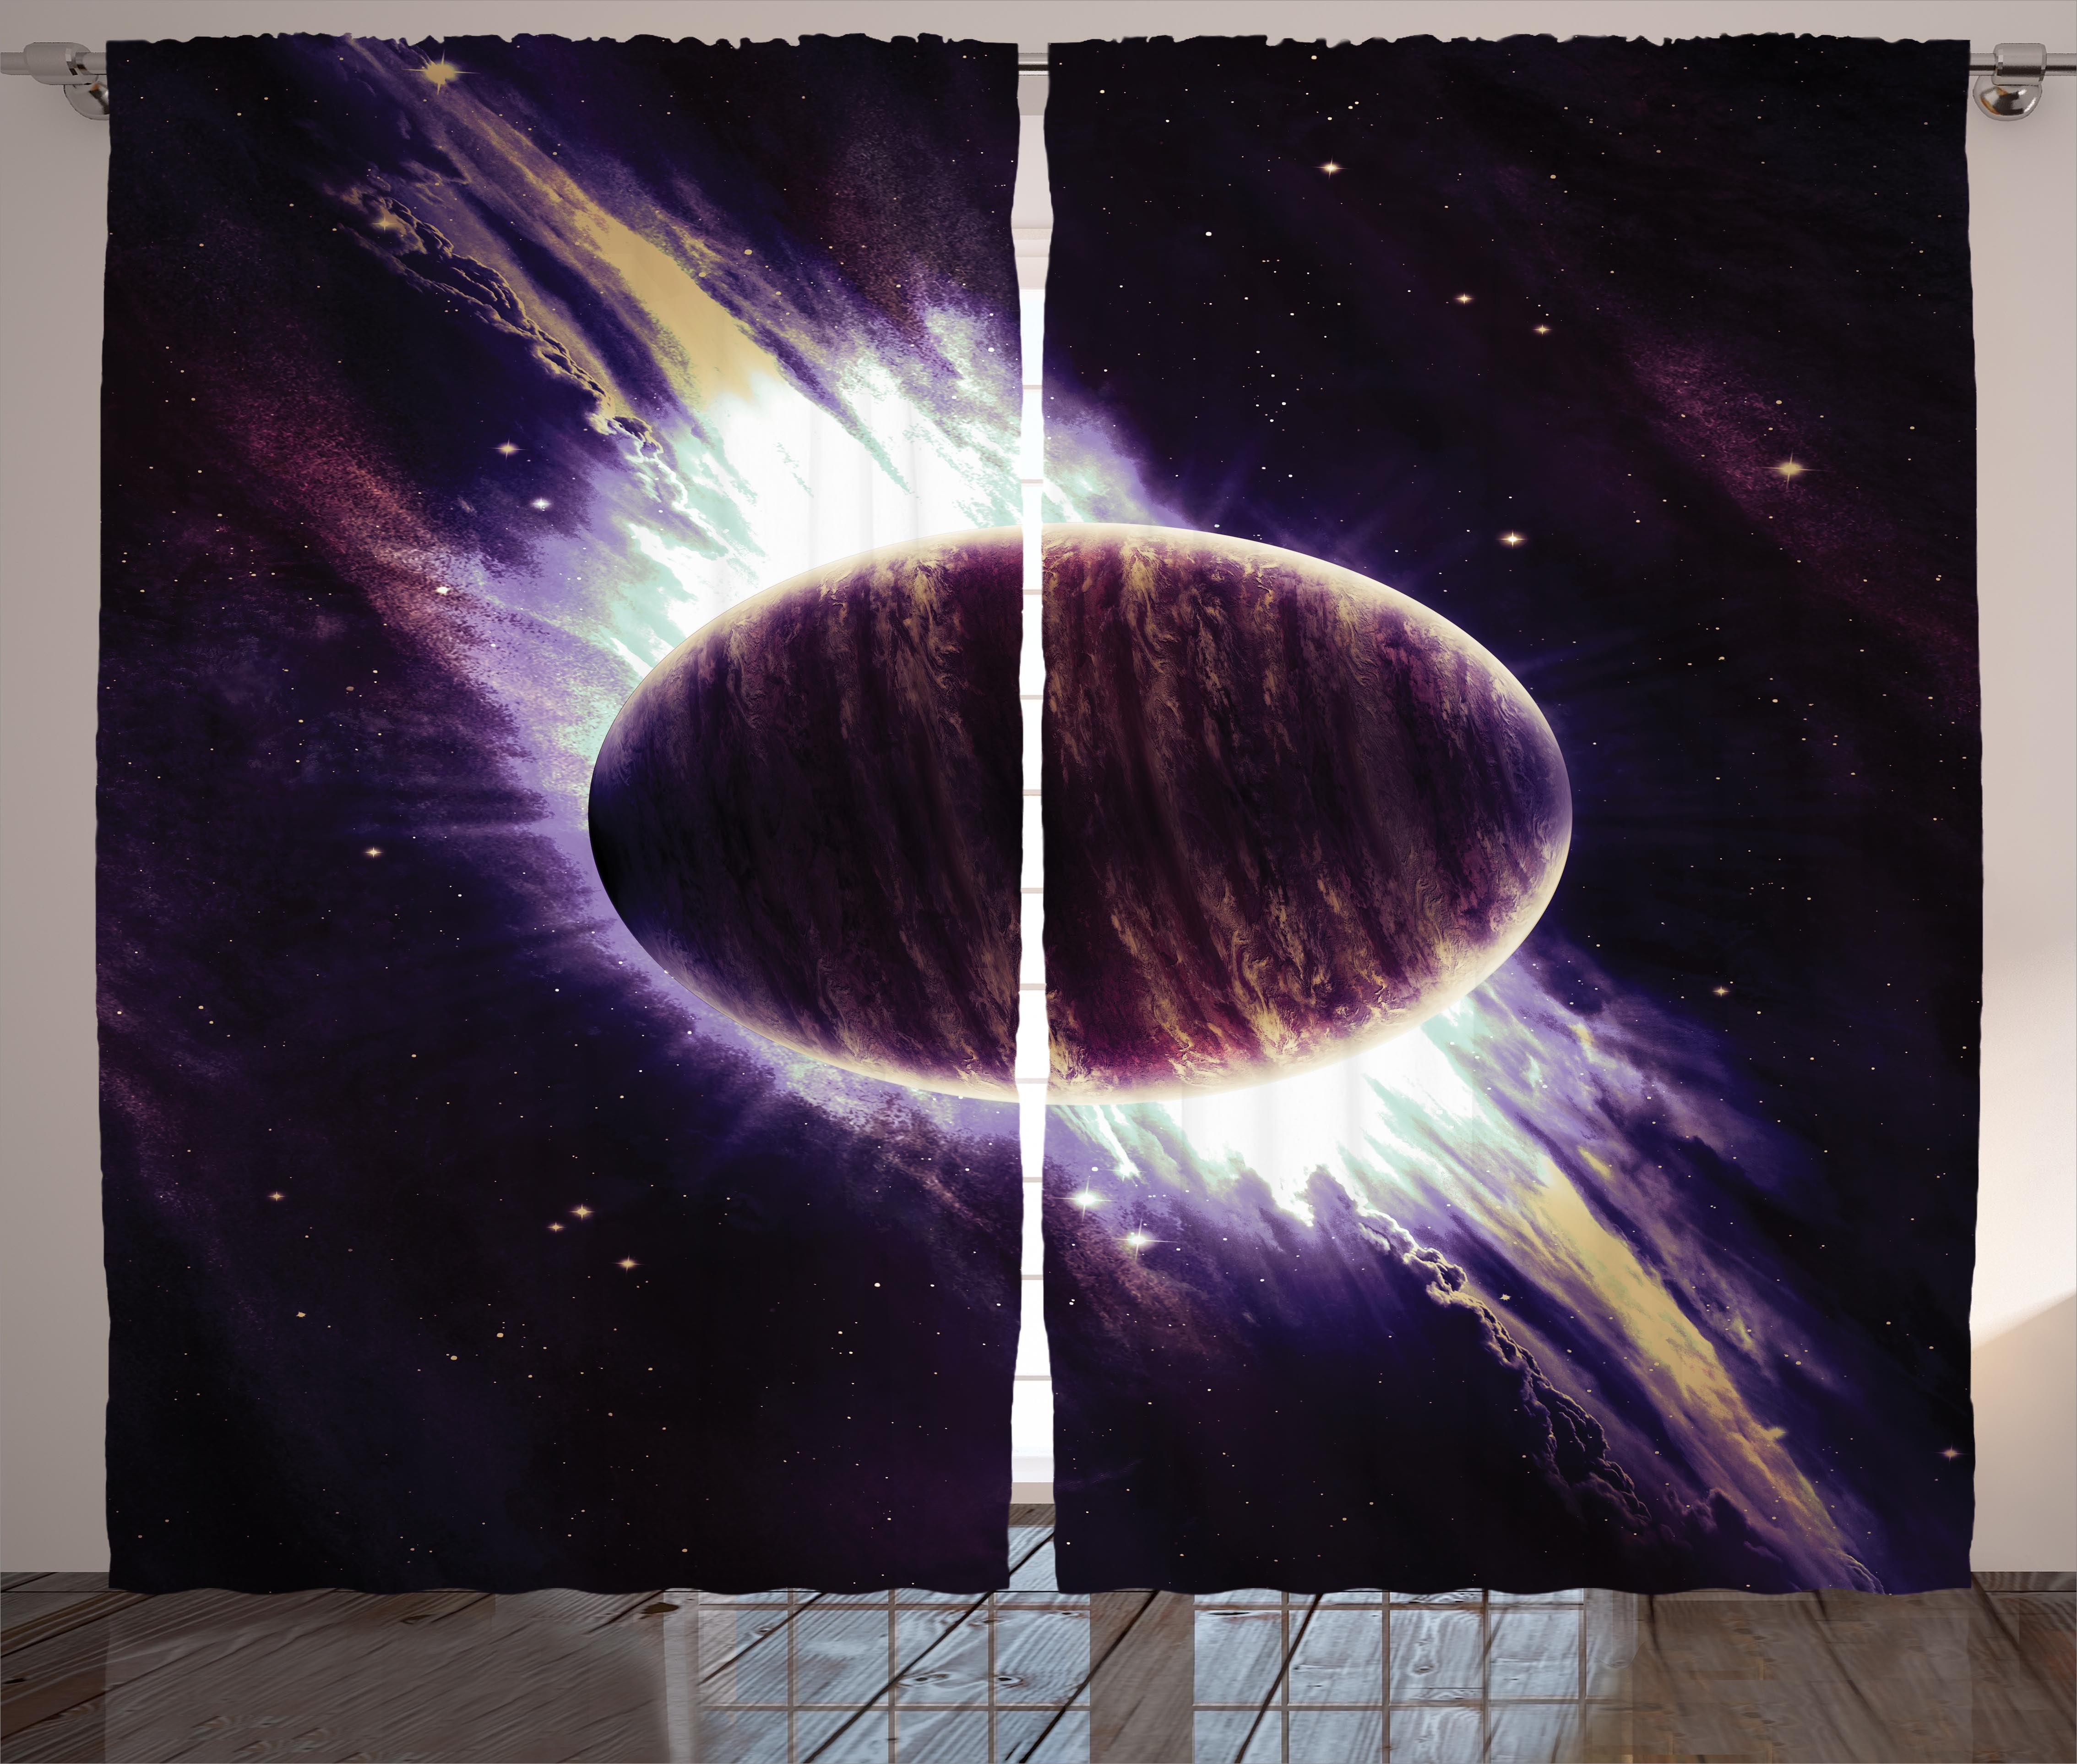 Curtains 2 Panels Set Trippy Pla In Cosmos Mystic Spiral Rhwalmart: Galaxy Drapes For Bedroom At Home Improvement Advice